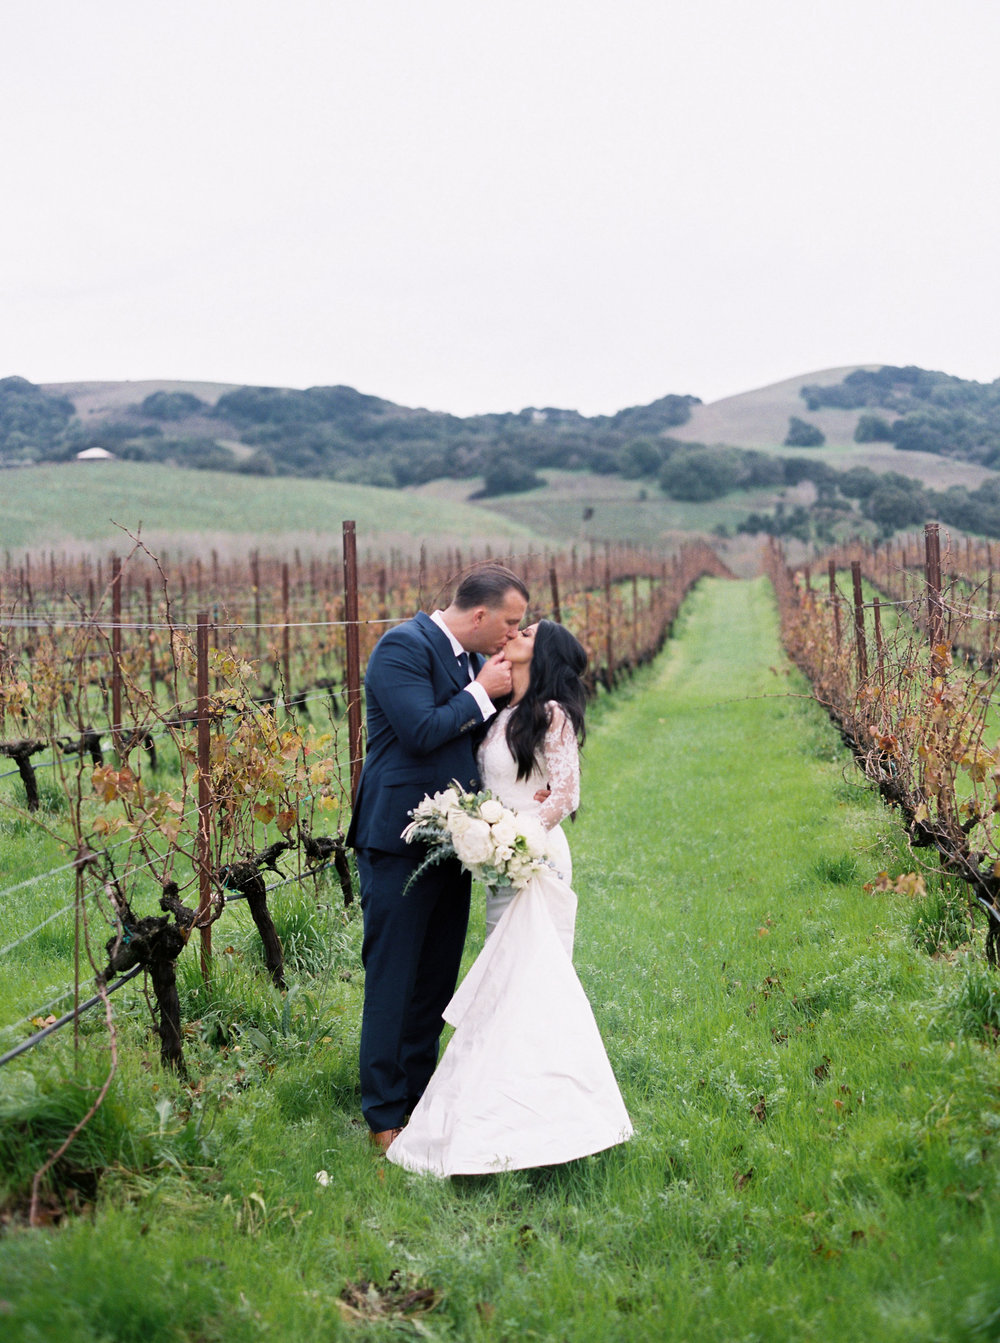 romantic-wedding-at-cline-winery-in-sonoma-california-1-18.jpg